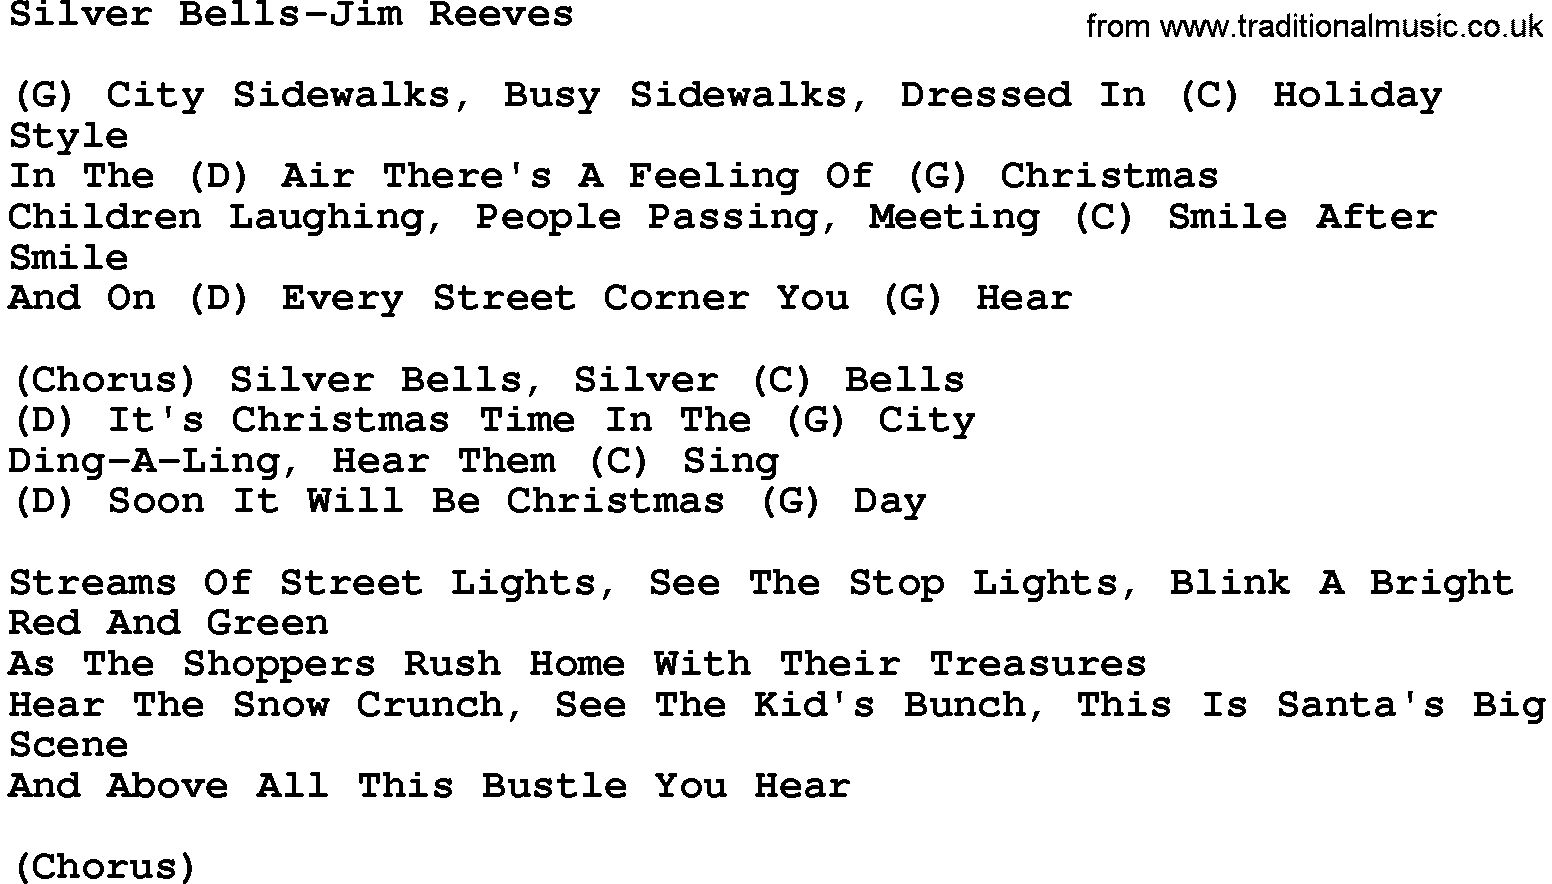 Country Music:Silver Bells-Jim Reeves Lyrics and Chords